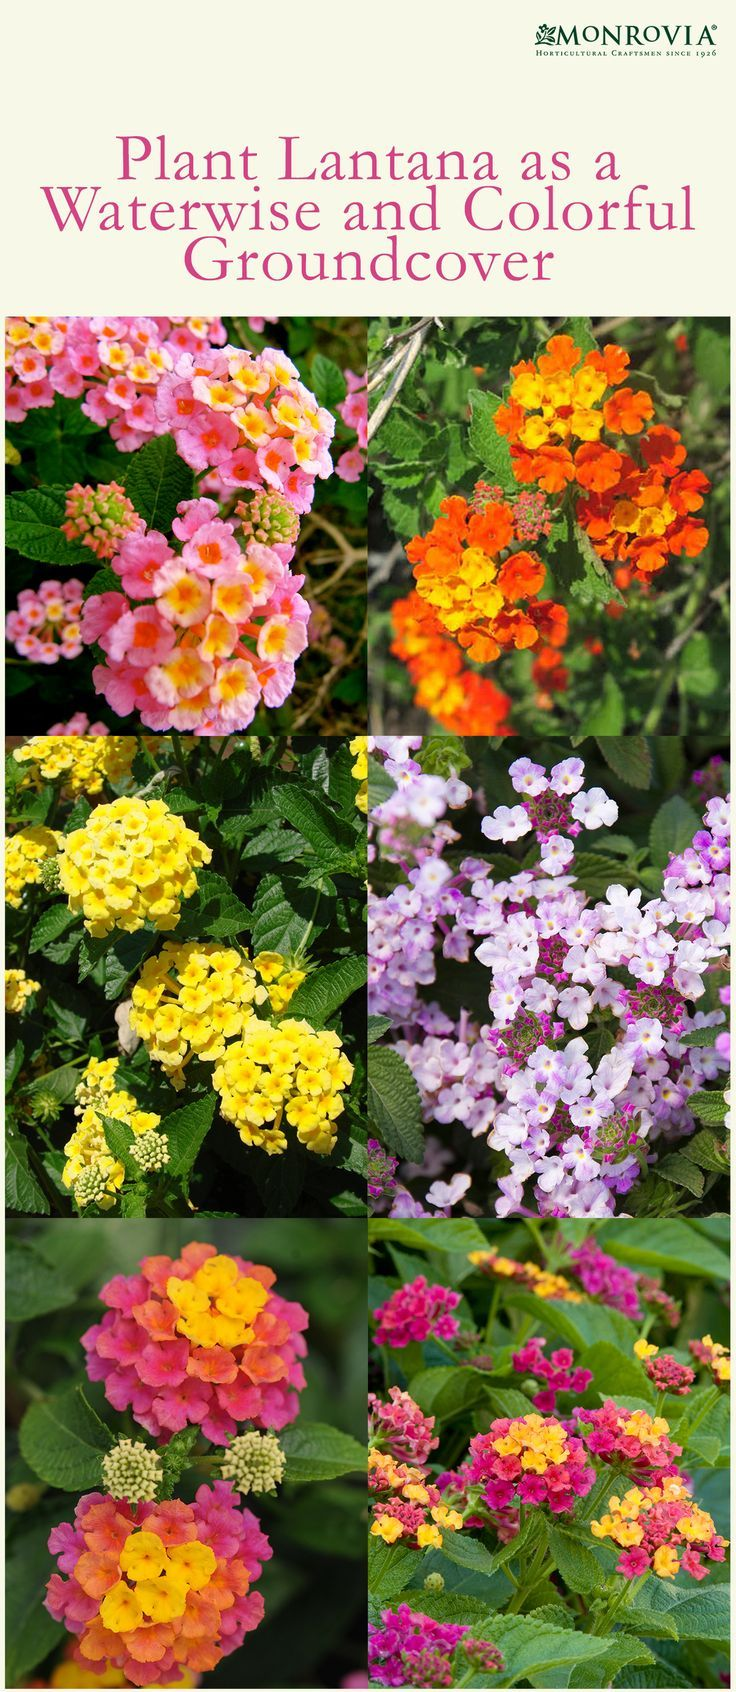 Lantana Hanging Basket Amazing Lantana Will Give Your Garden The Iron Grip It Needs When Heavy Design Inspiration